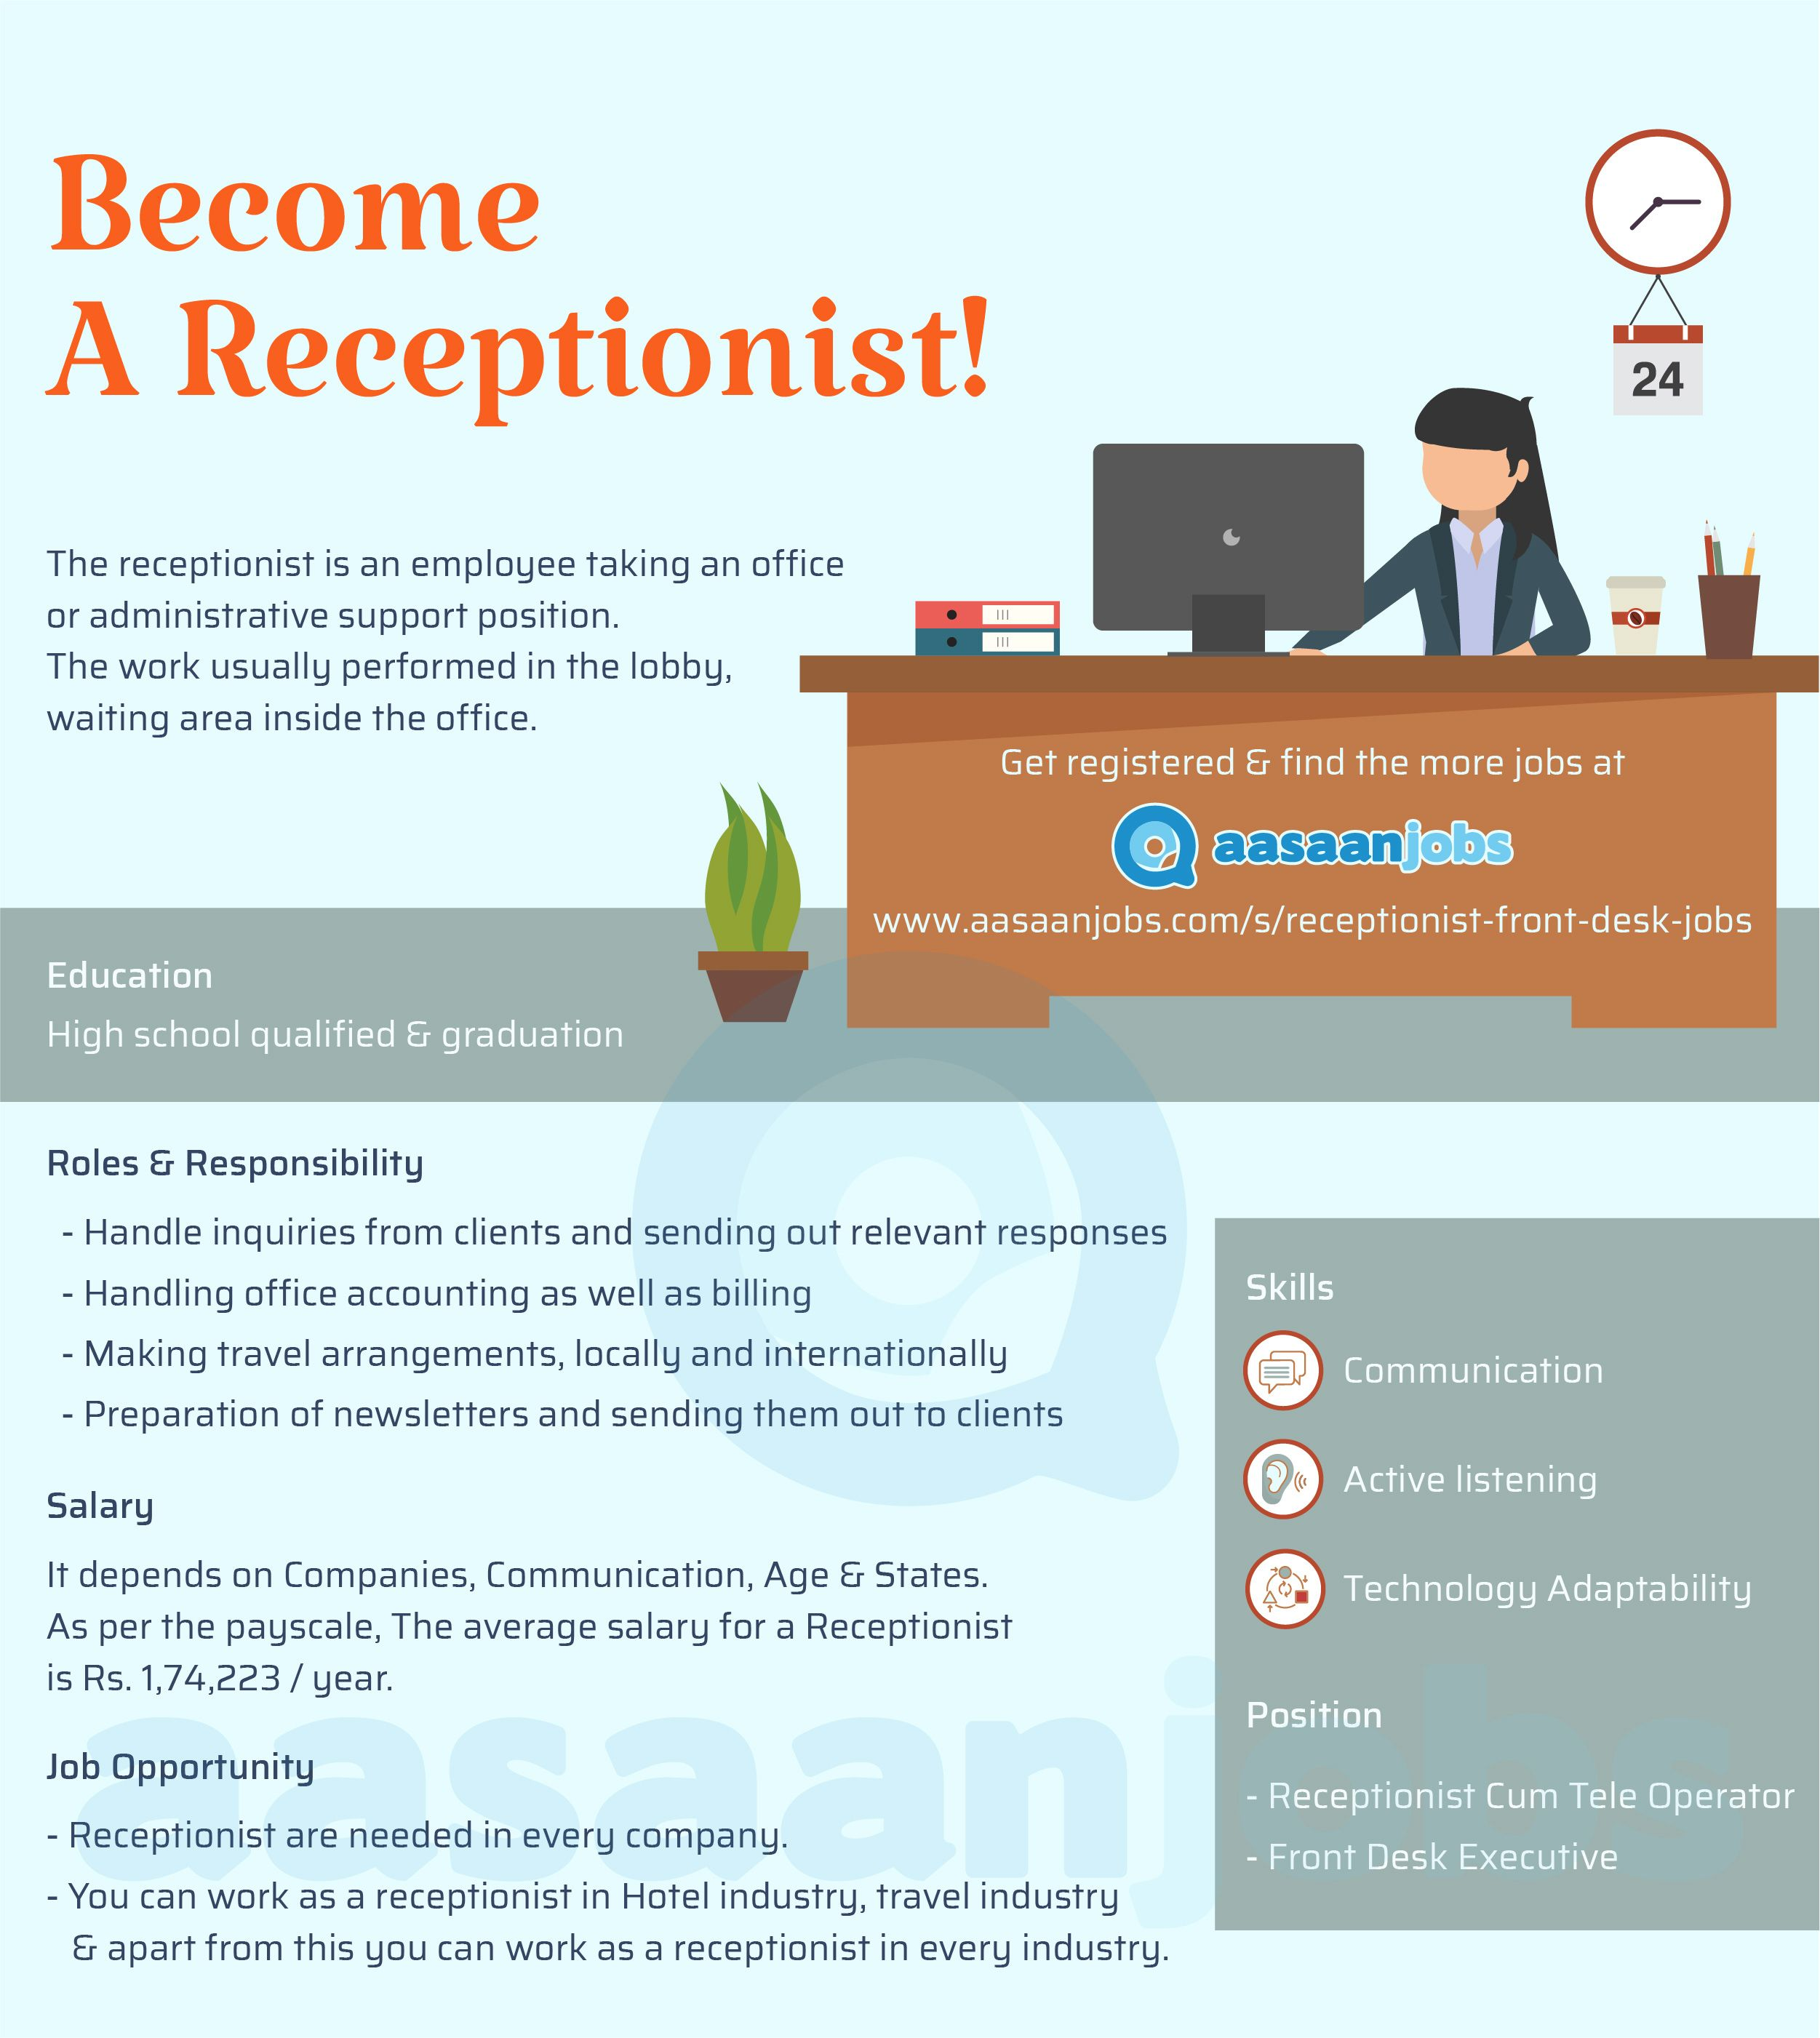 38 Receptionist Jobs July 2020 Receptionist Openings Aasaanjobs Receptionist Jobs Apply Job Job Hunting